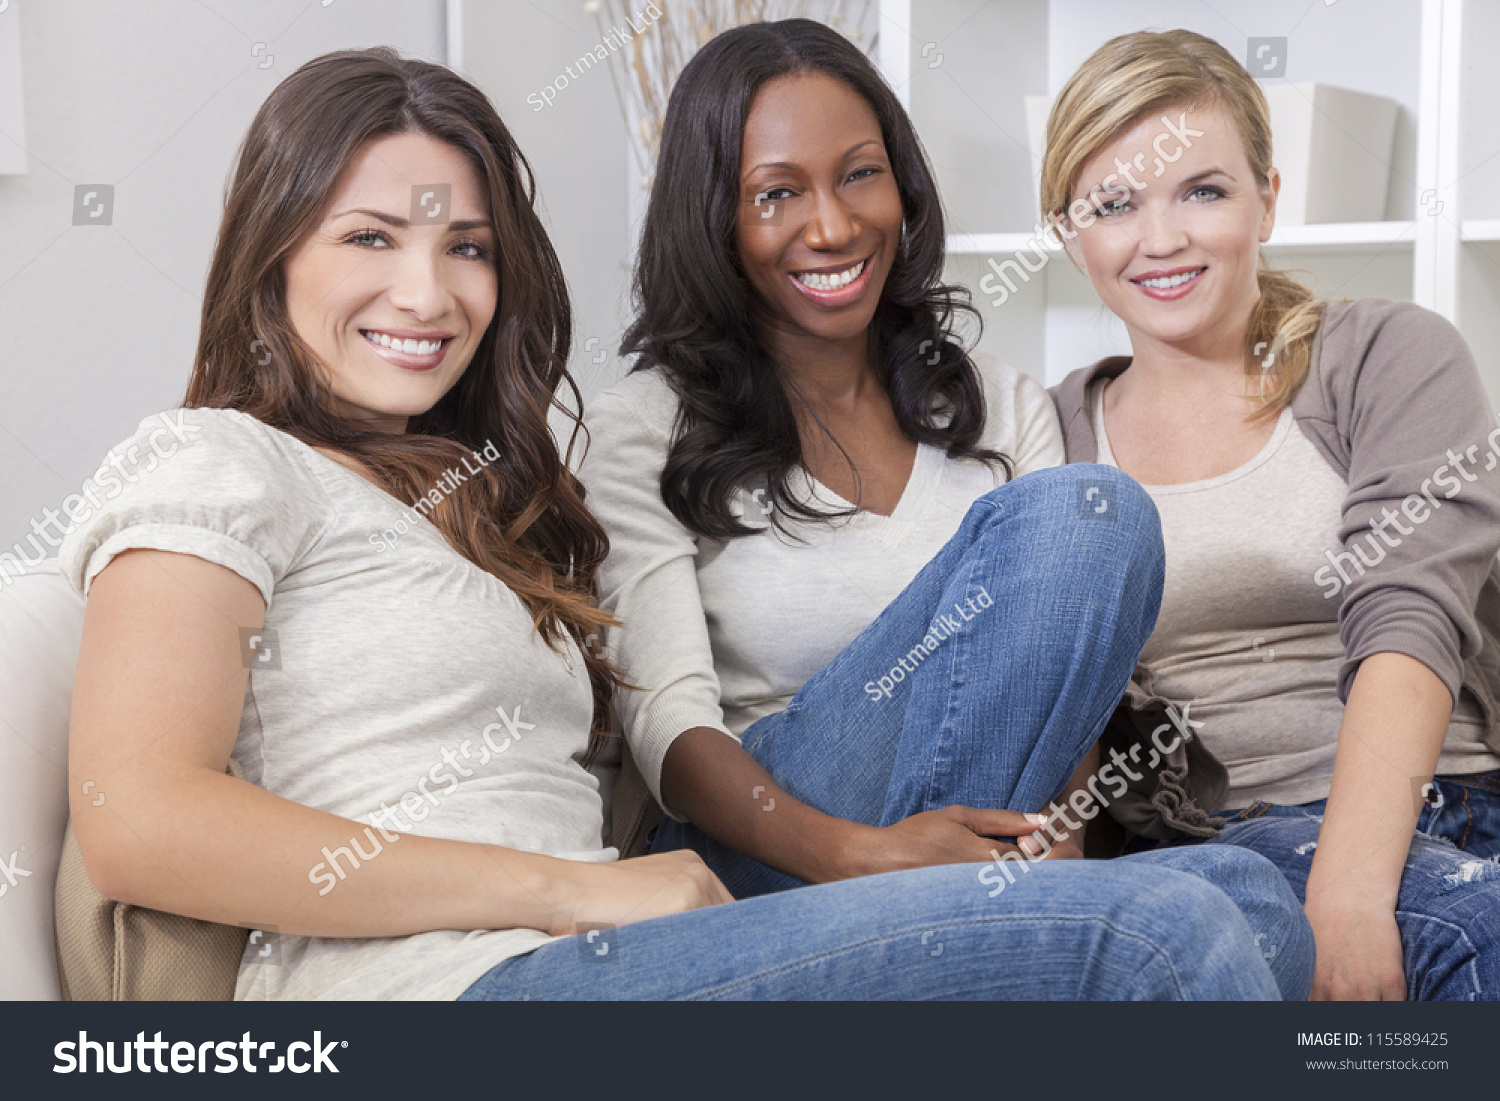 Picture of interracial women